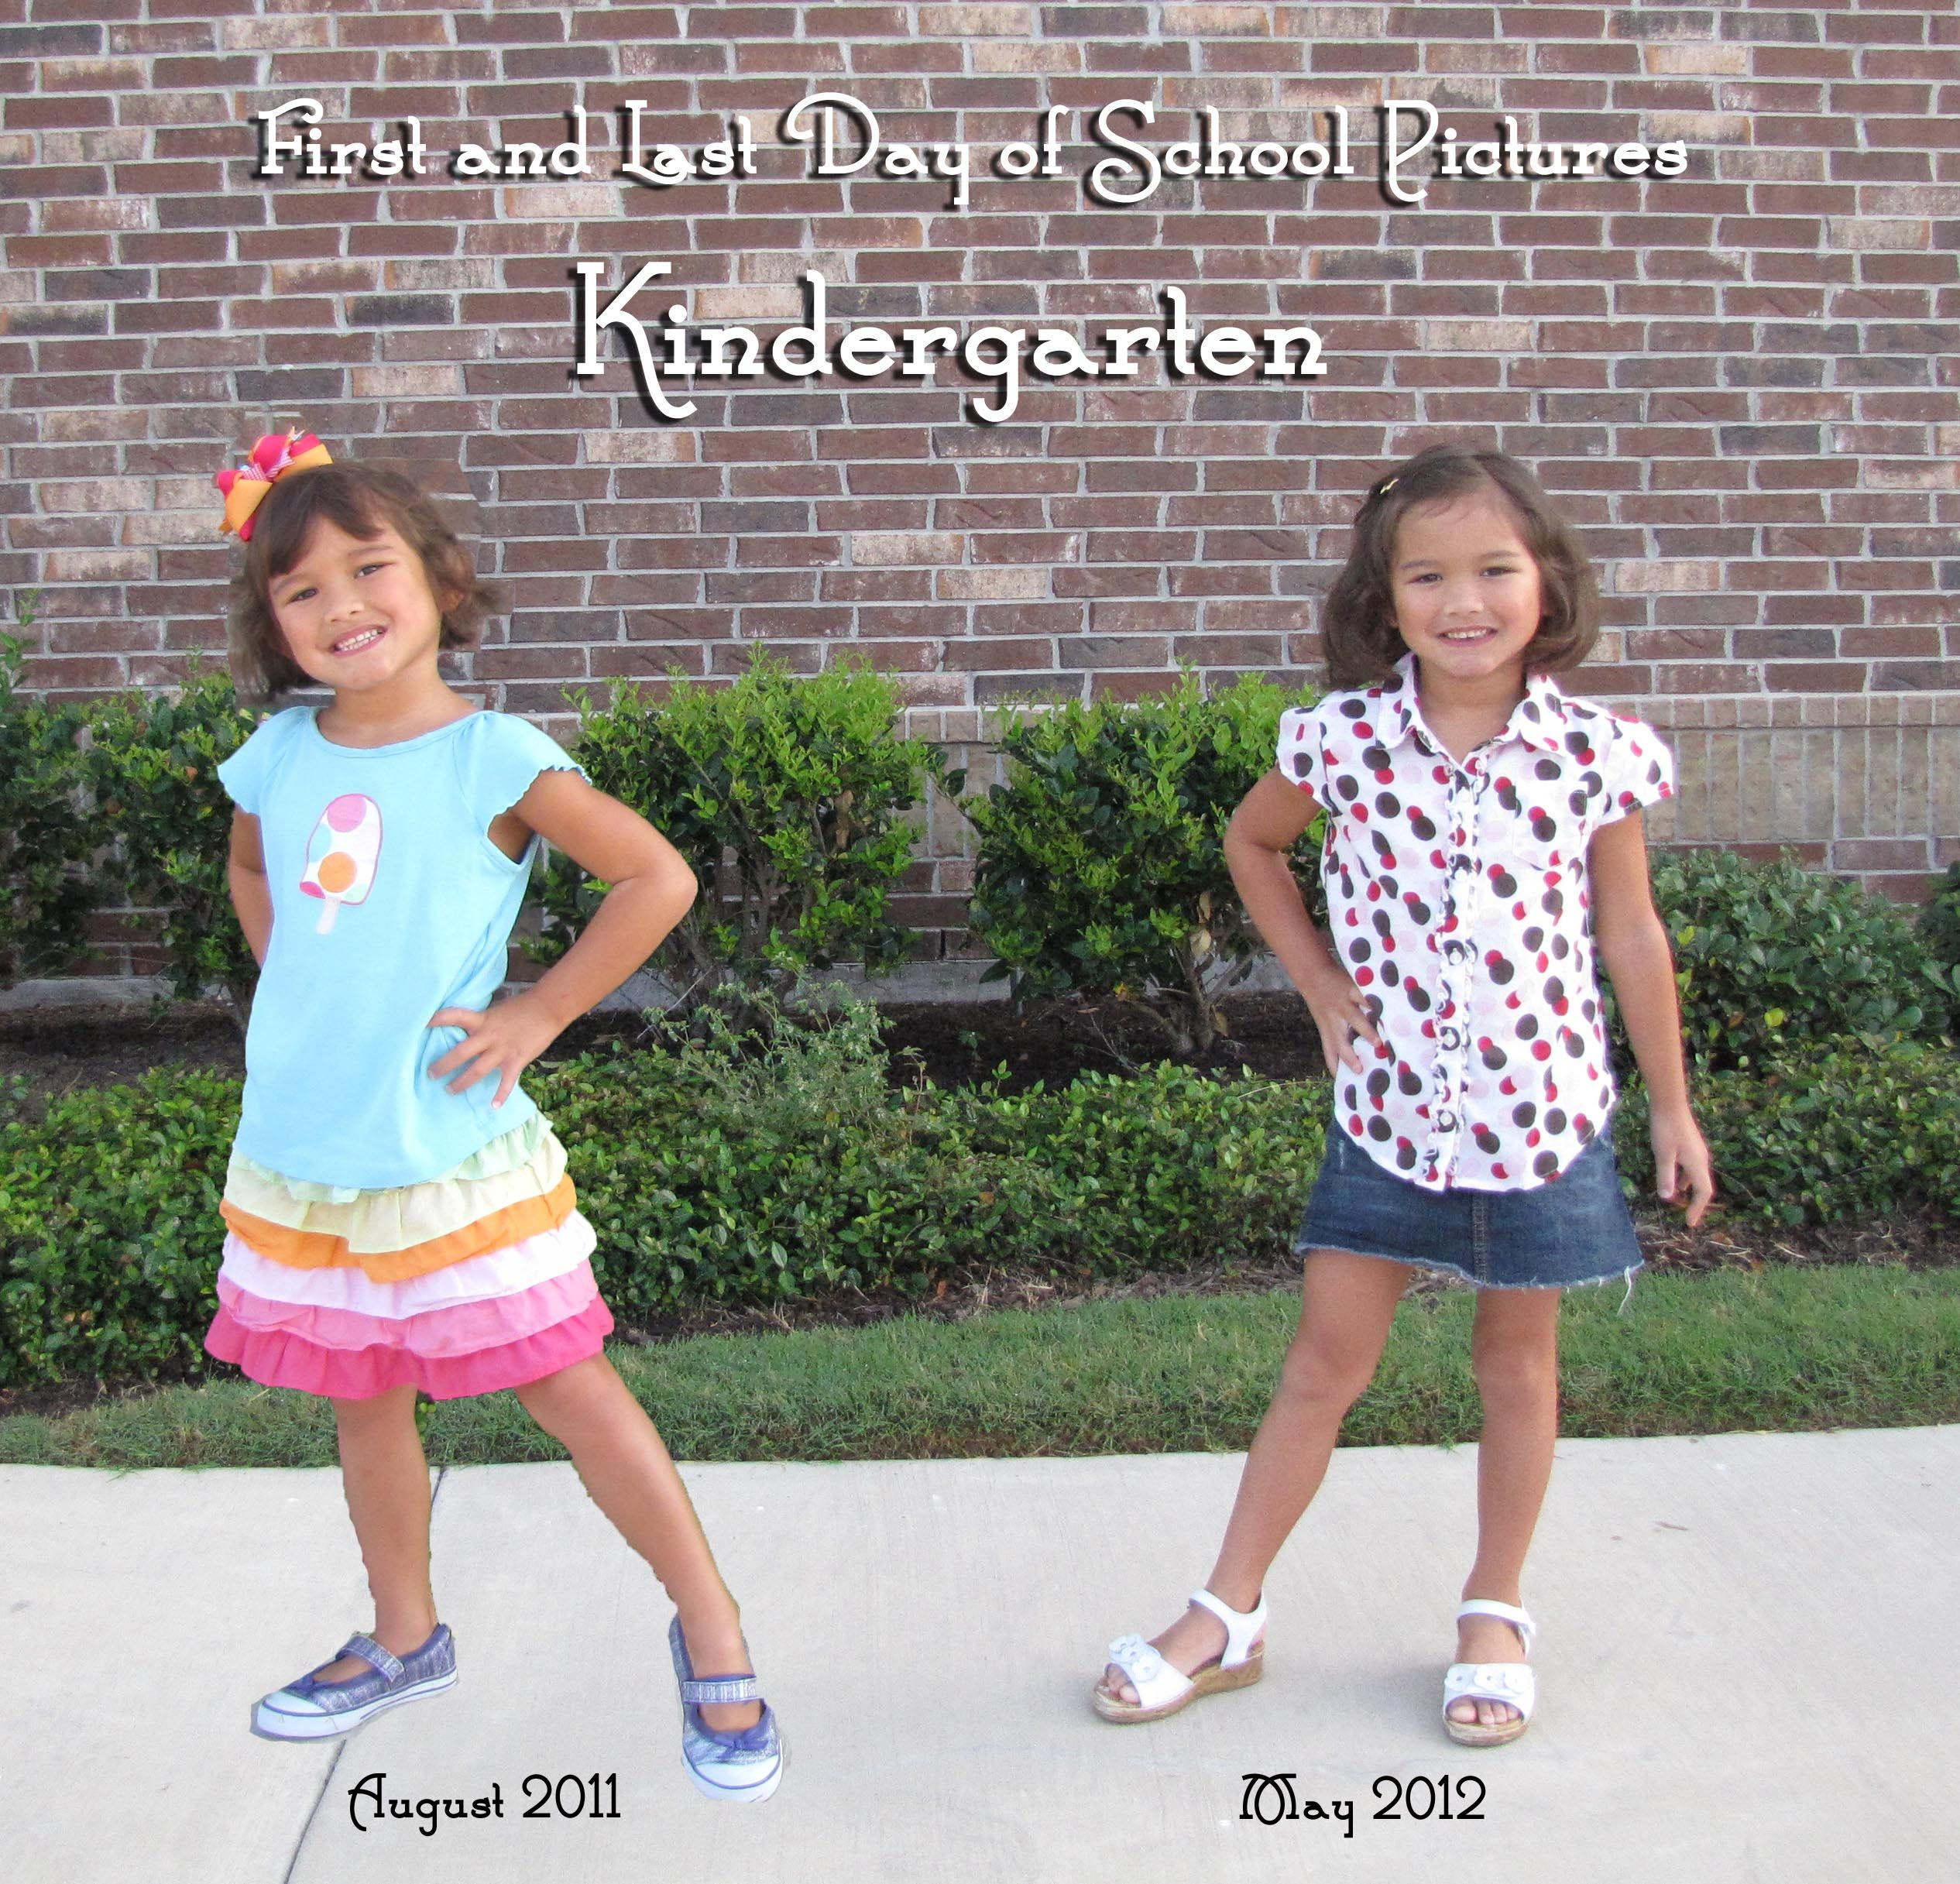 Photoshop First and Last Day of School Pictures